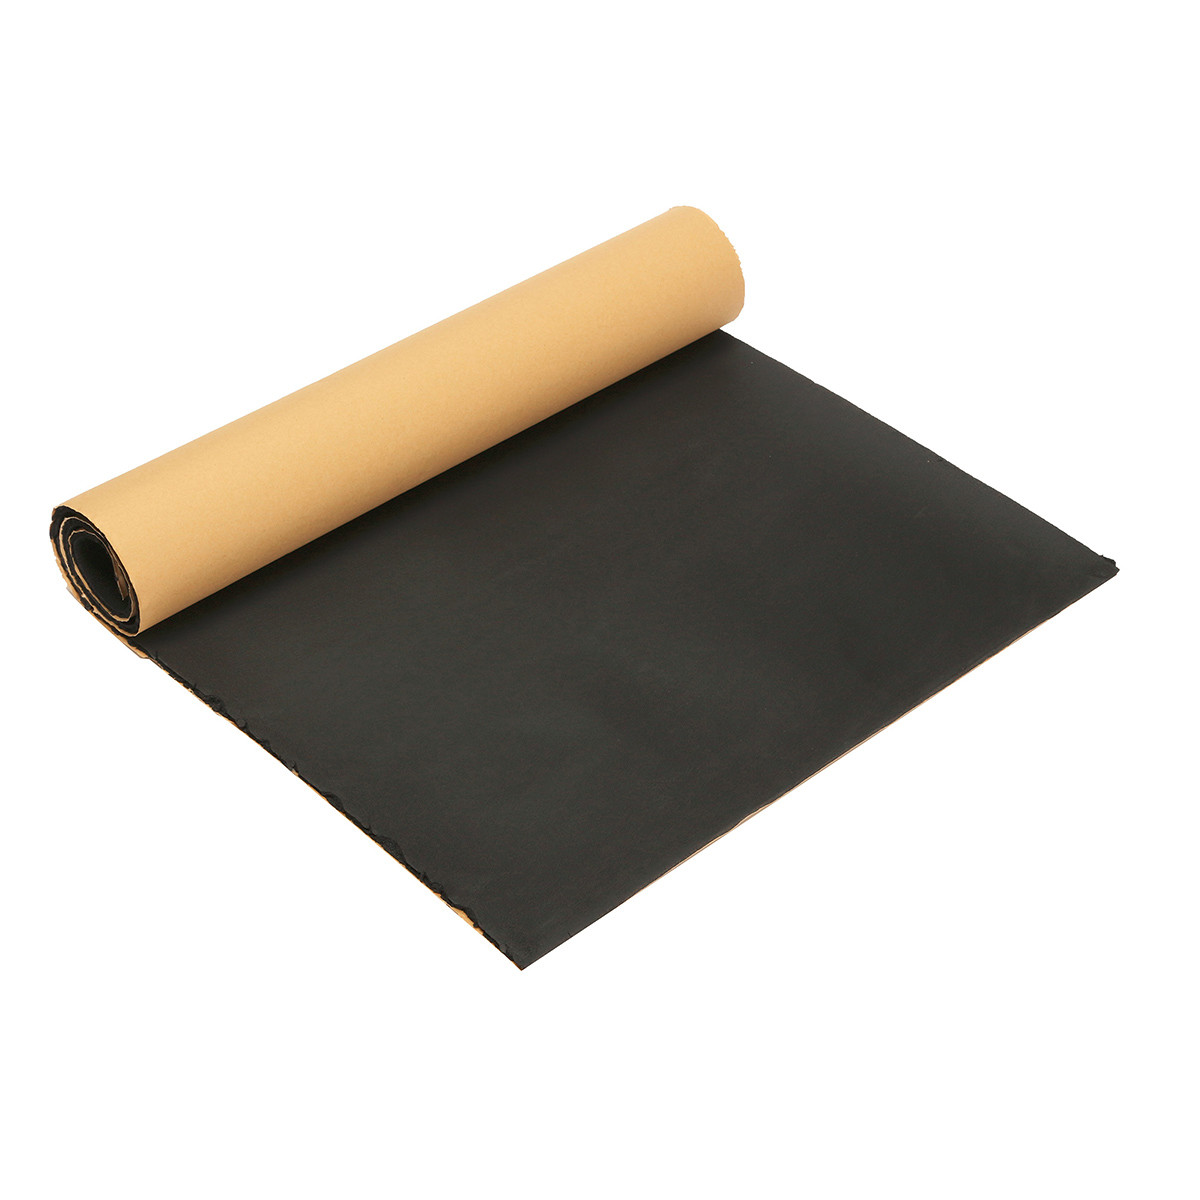 5mm 50cmx100cm Sound Proofing Deadening Anti-noise Insulation Heat Cell Foam For Car Home Office